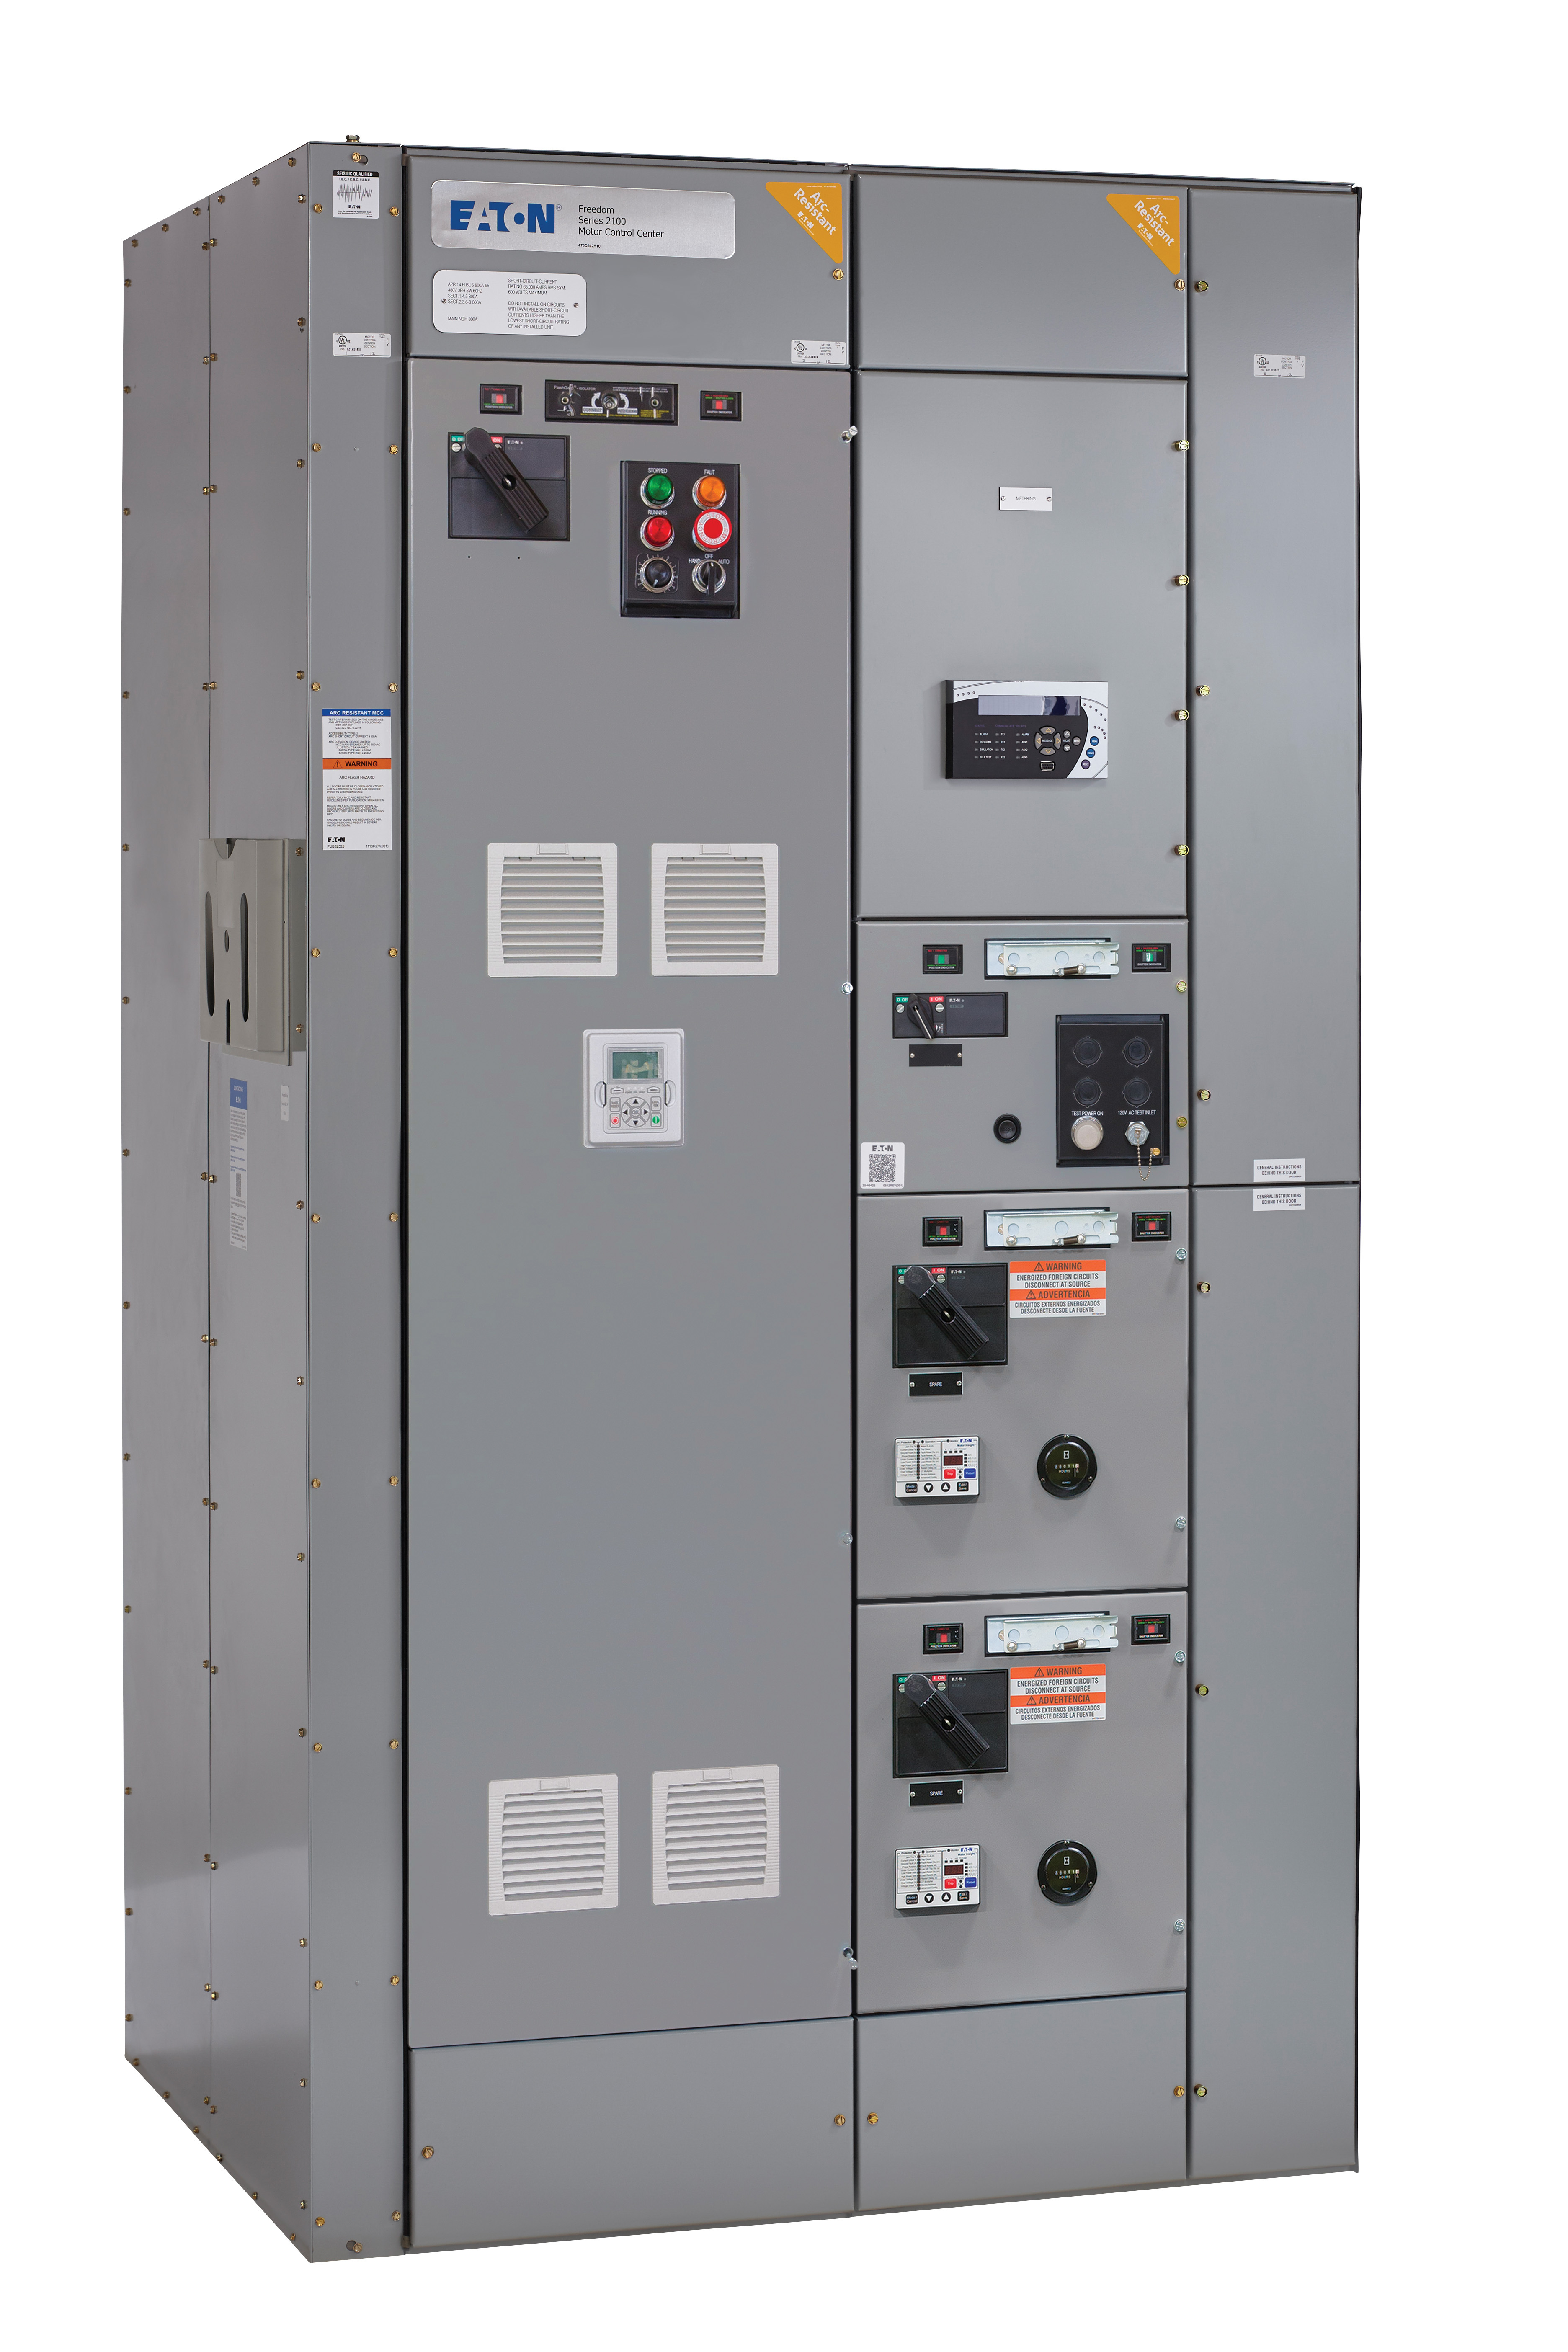 Eaton Introduces First Motor Control Center Design To Help